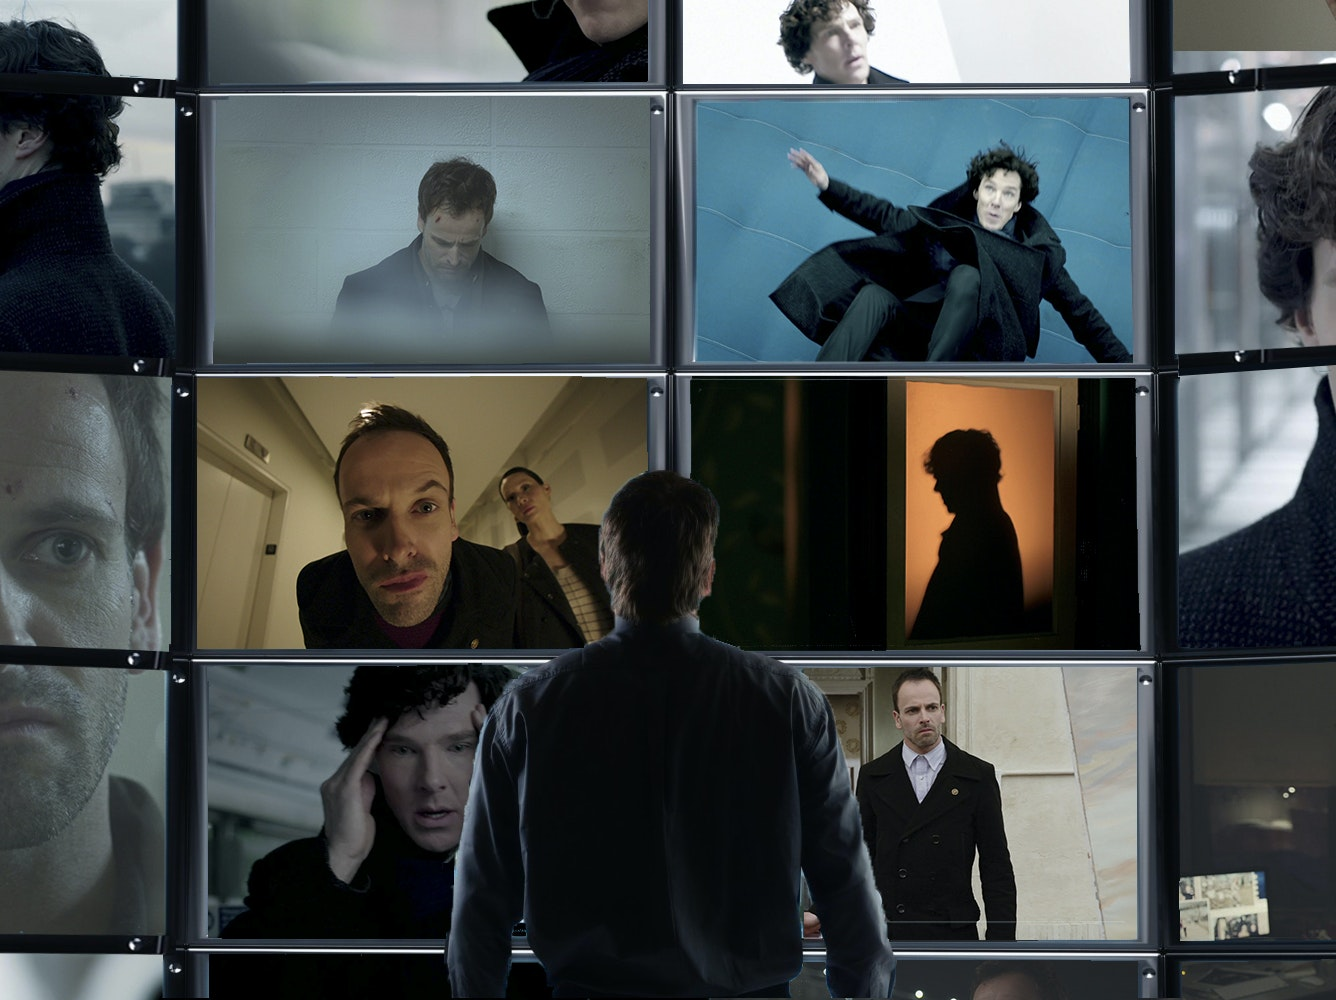 How Sherlock Holmes Fights Big Brother in the Surveillance Age